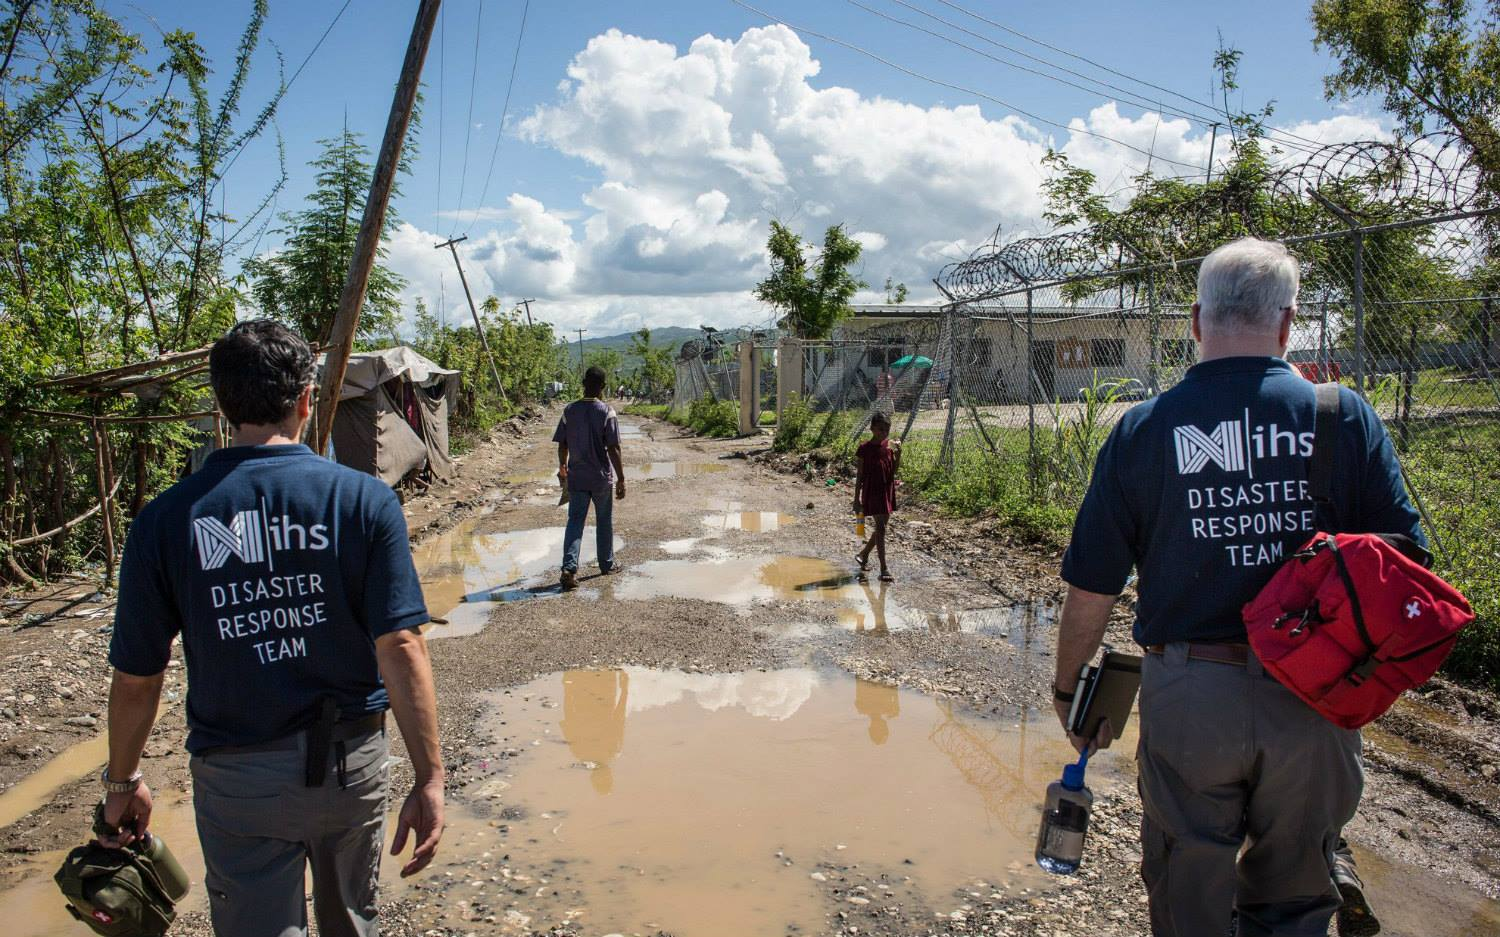 disaster response team walking through muddy puddles